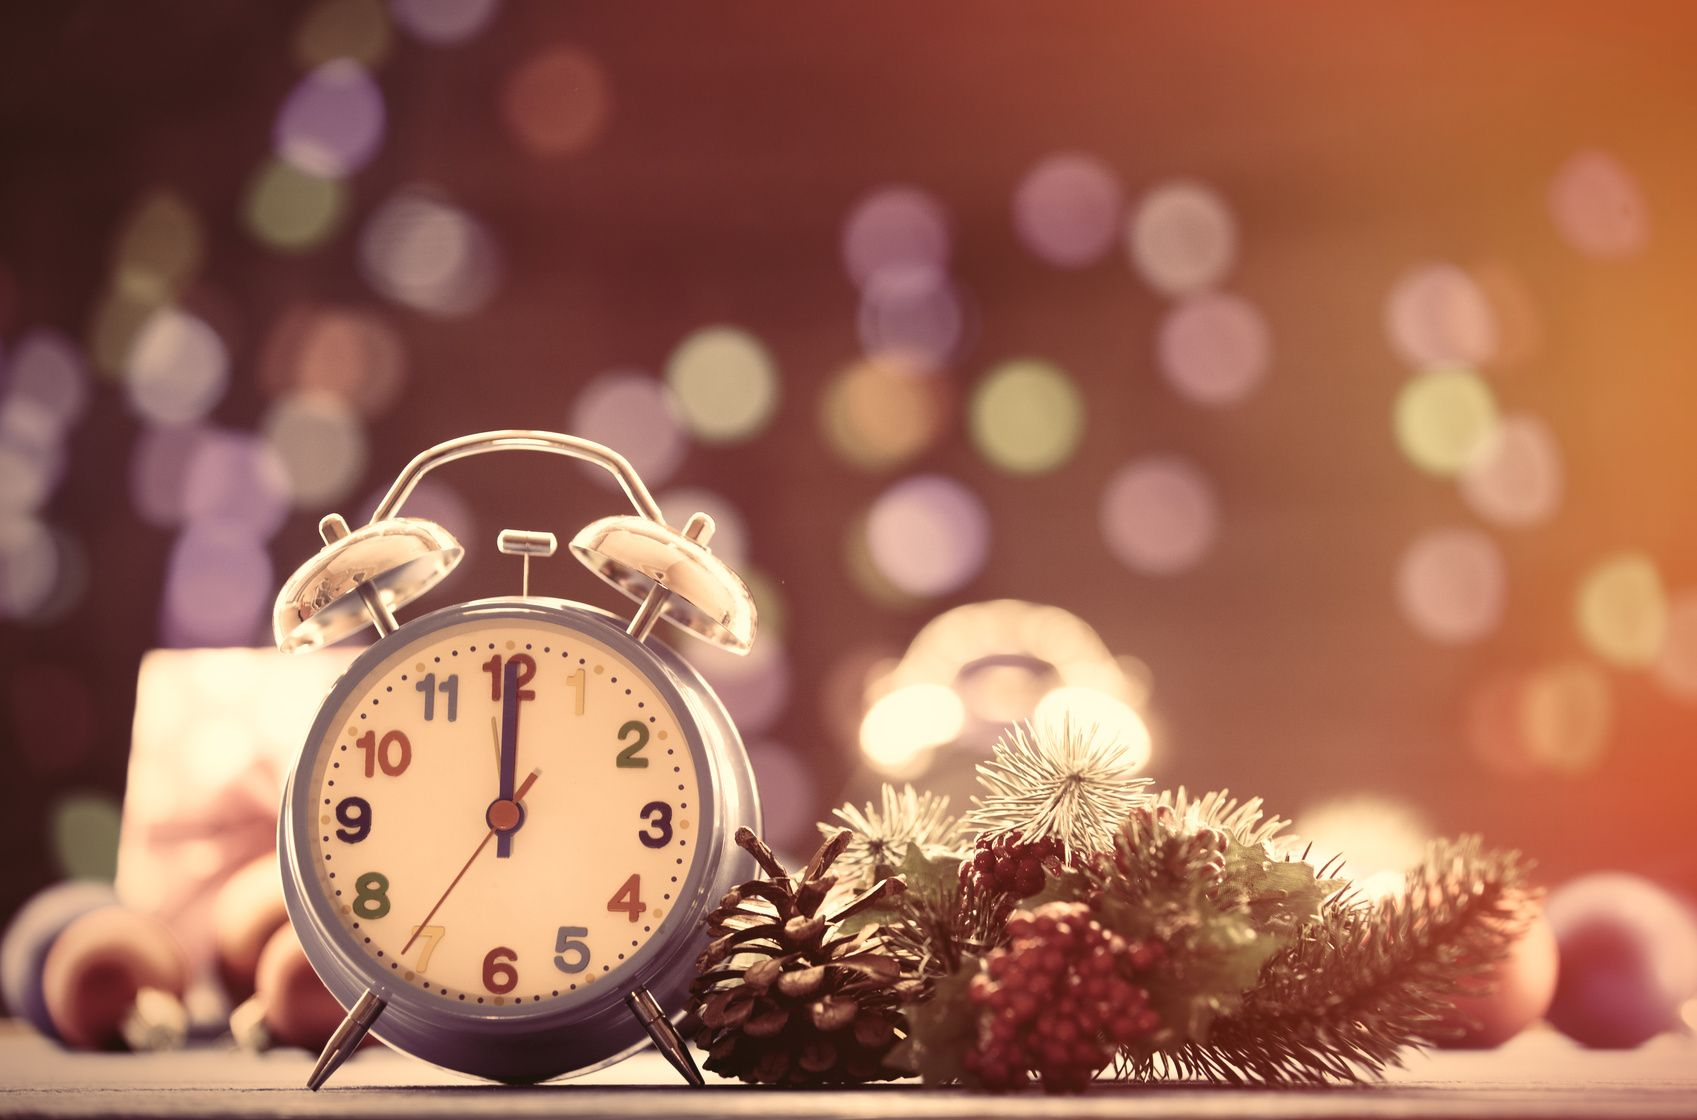 Clock and pine branch with Christmas lights on background